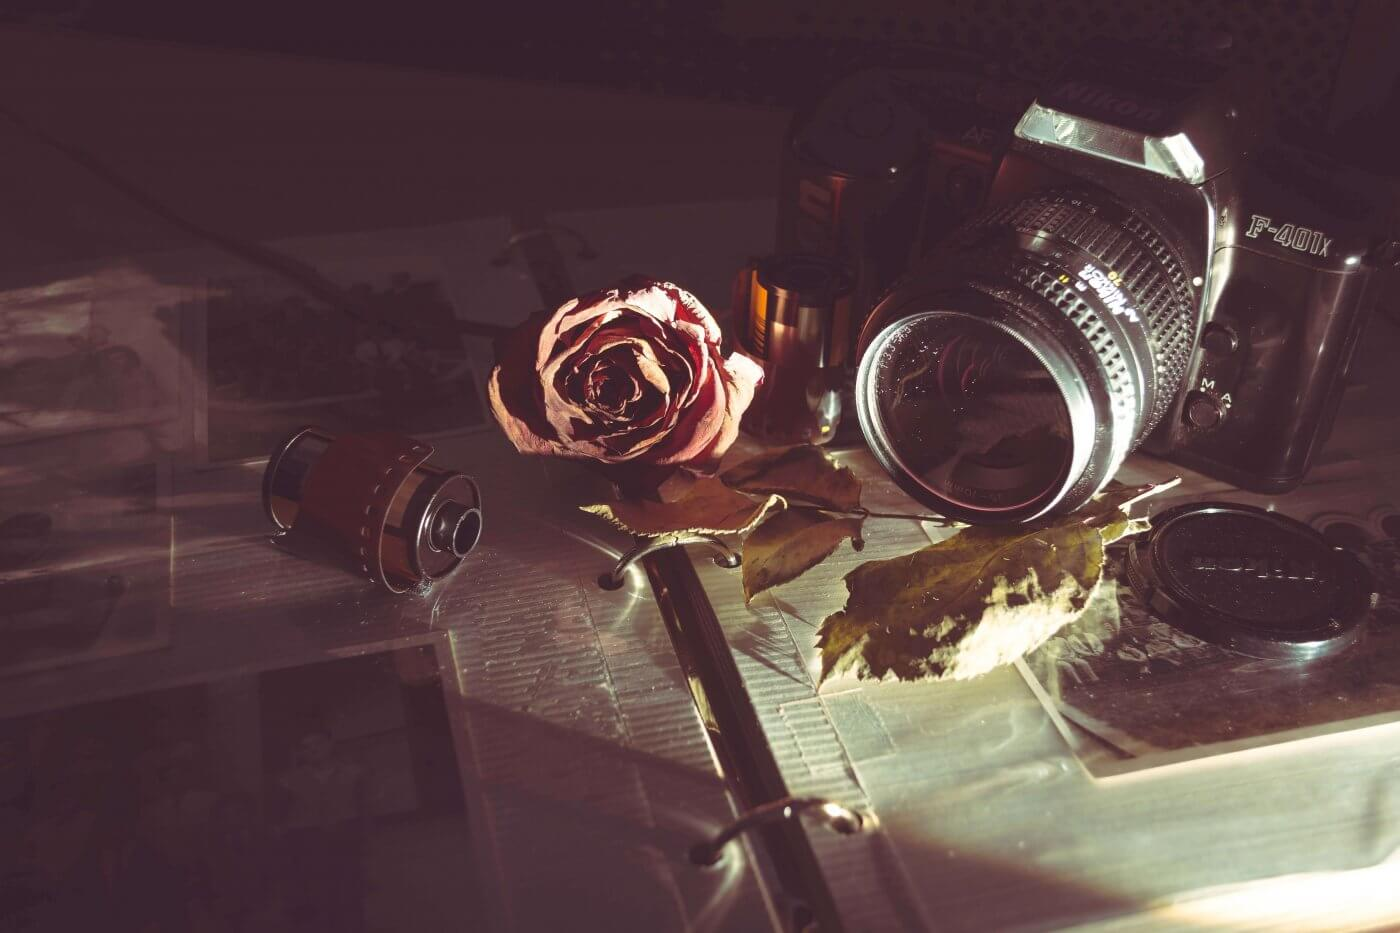 Camera & Rose | The Mustcard